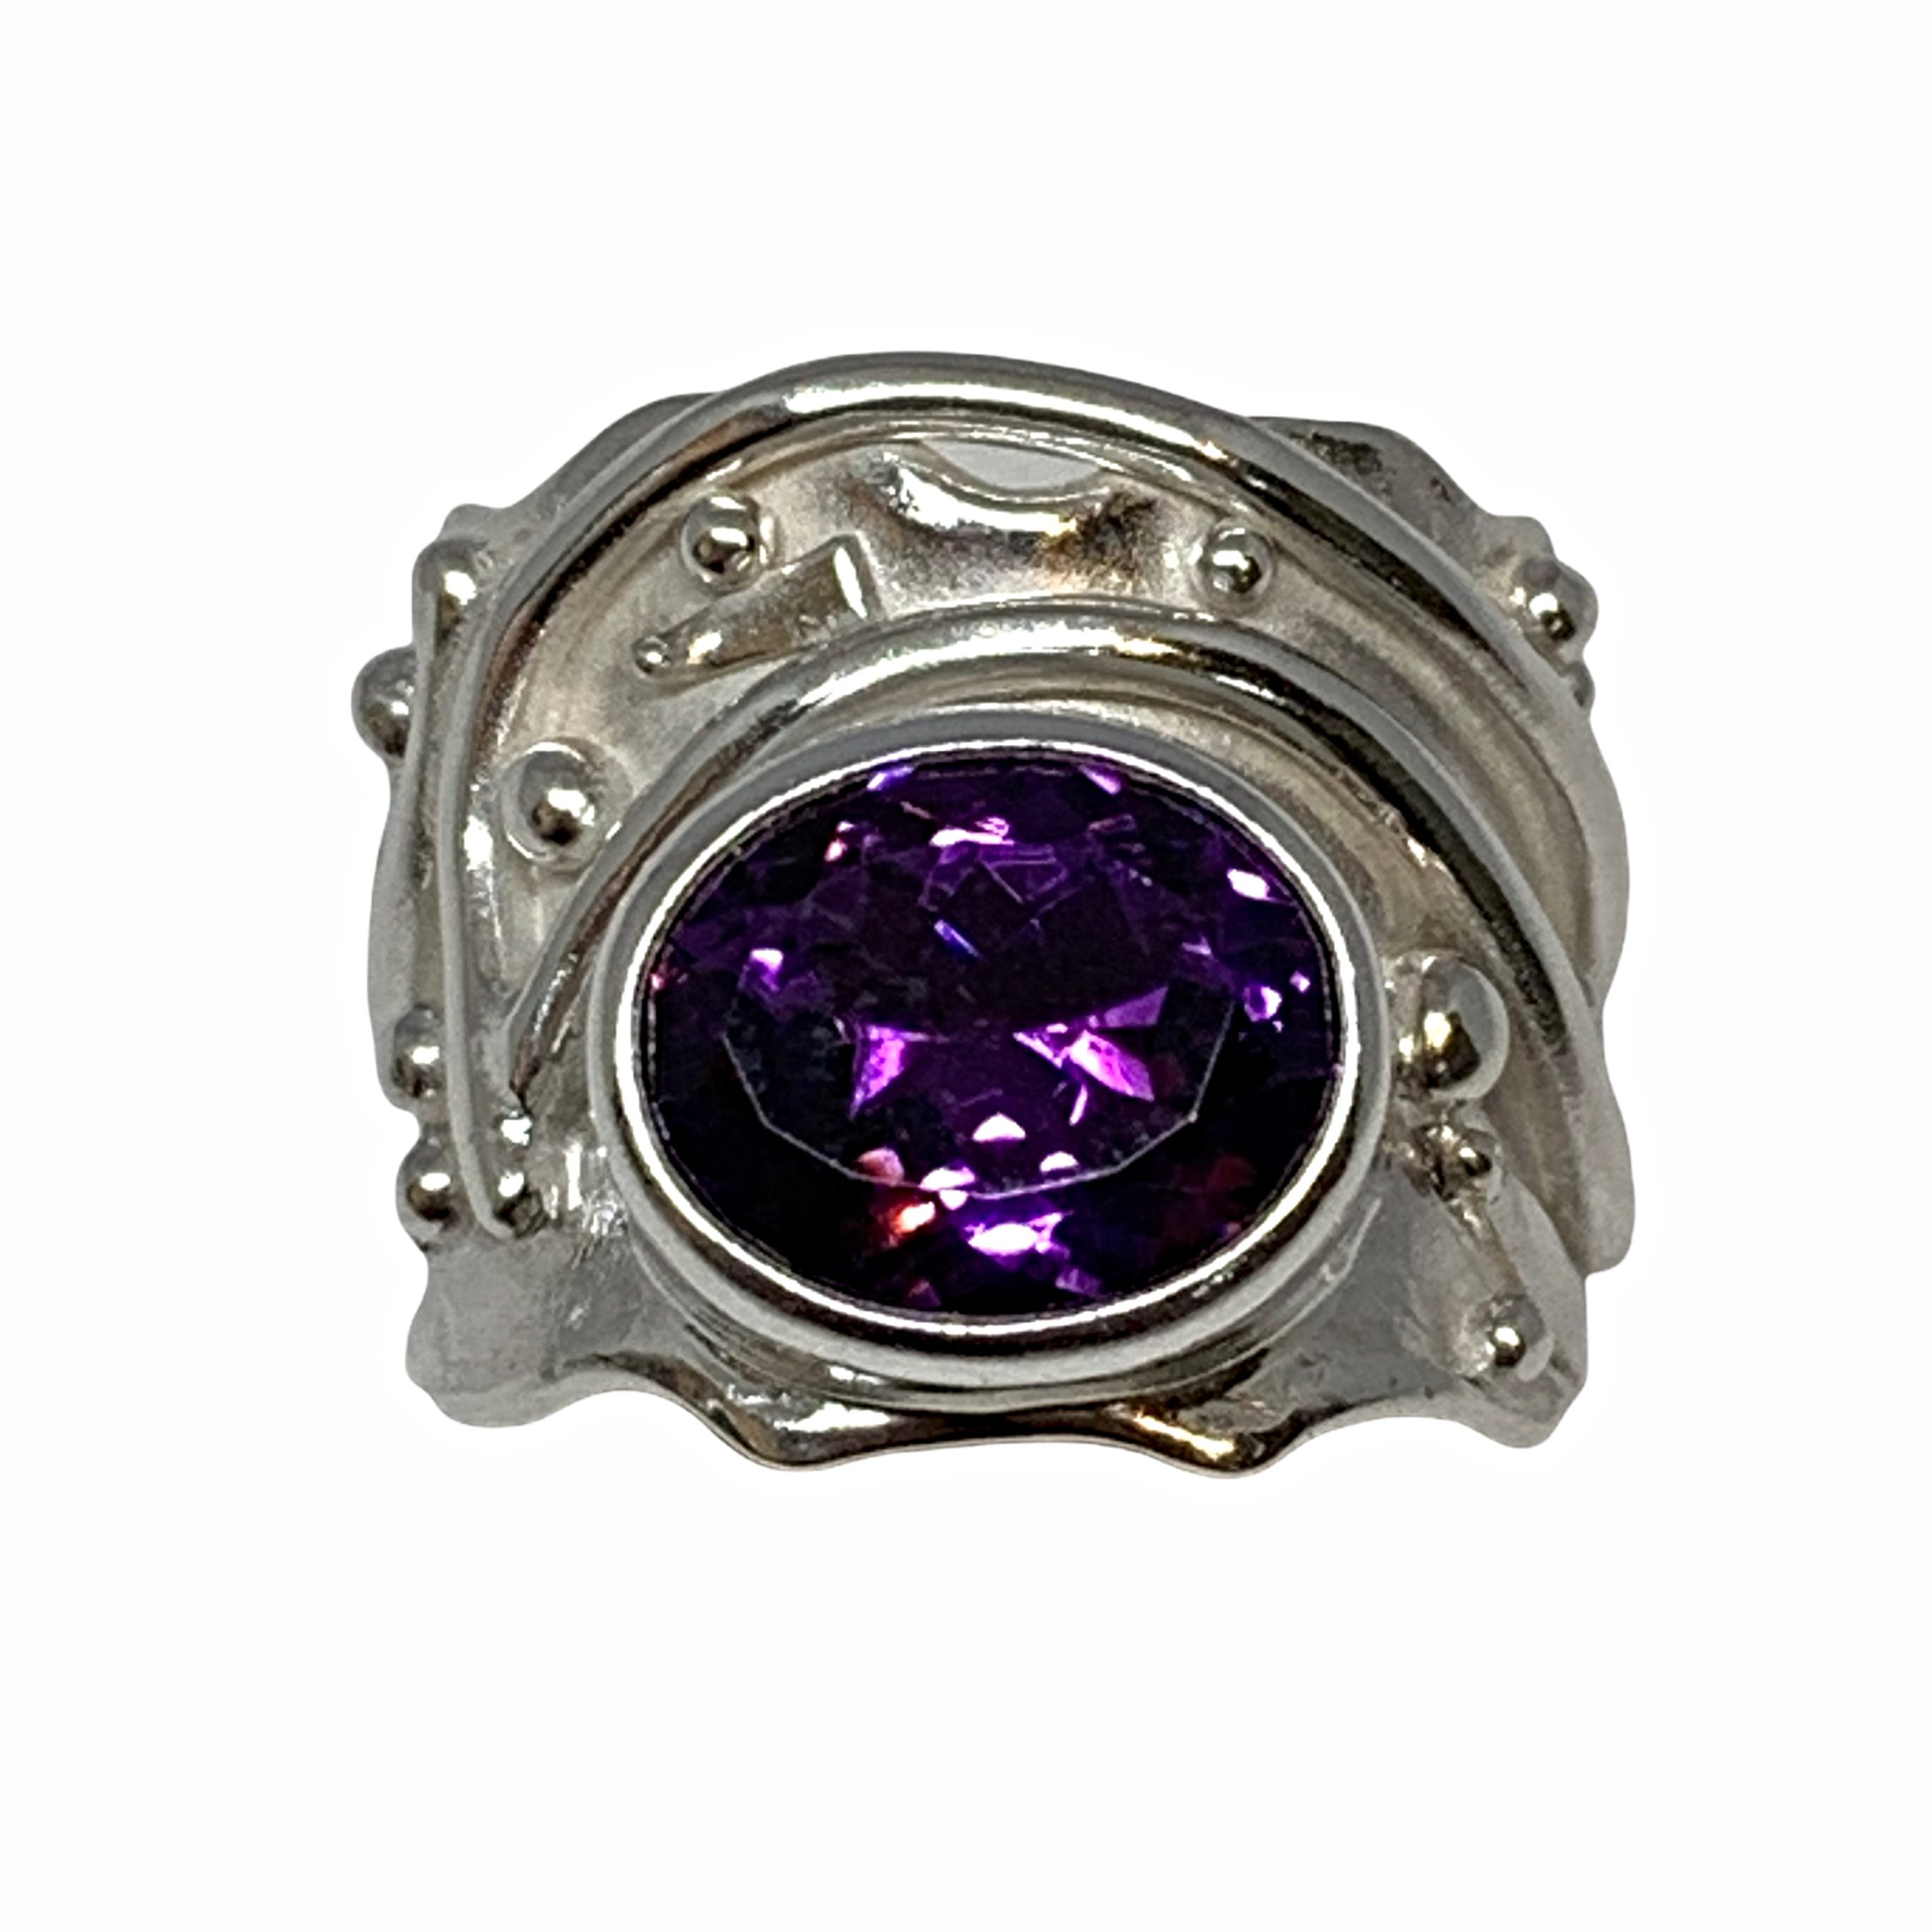 Handmade sterling silver and amethyst ring by A&R Jewellery   Effusion Art Gallery + Cast Glass Studio, Invermere BC